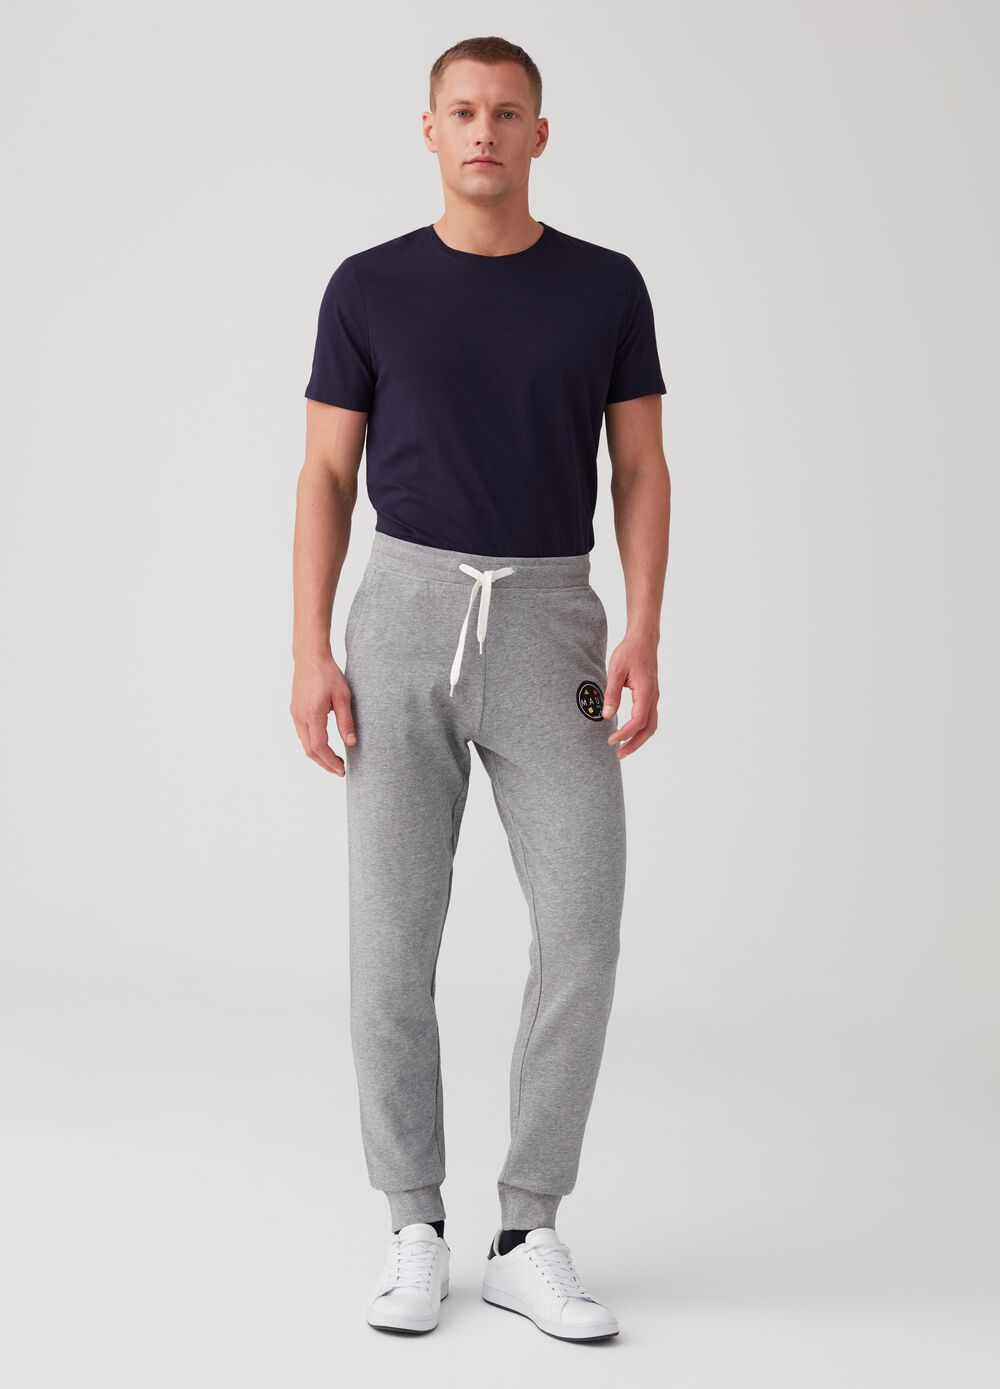 Joggers by Maui and Sons